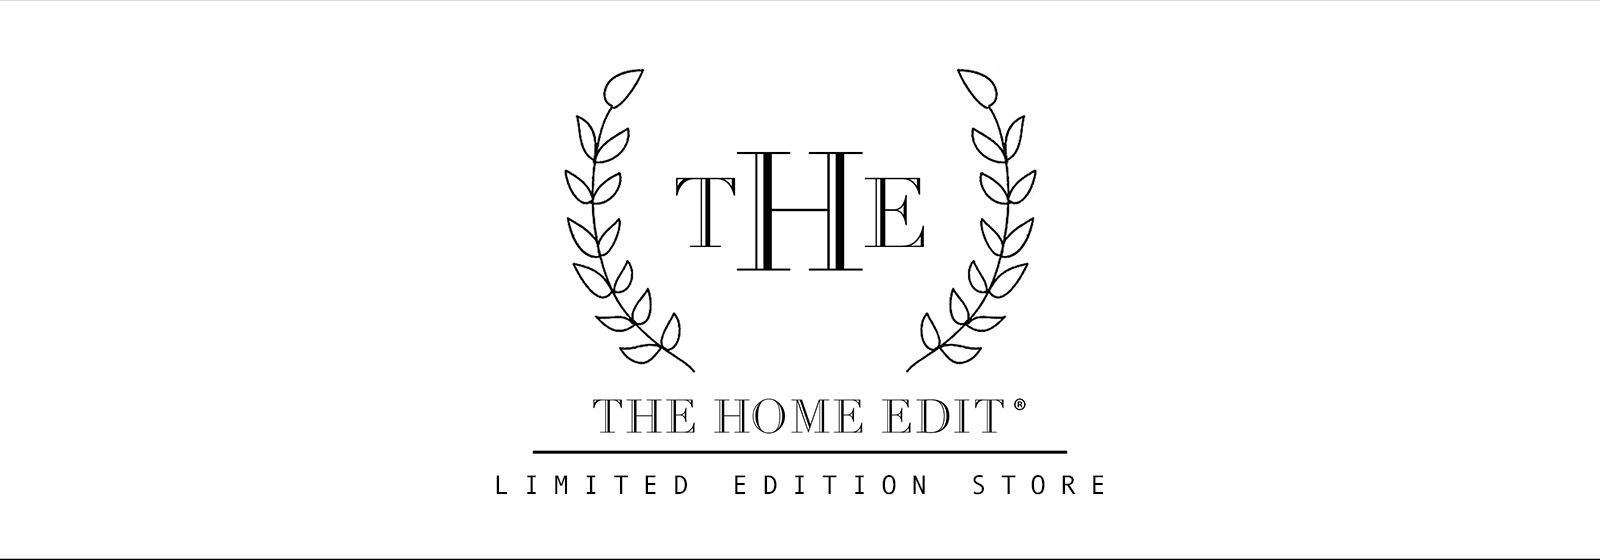 The Home Edit Store Store